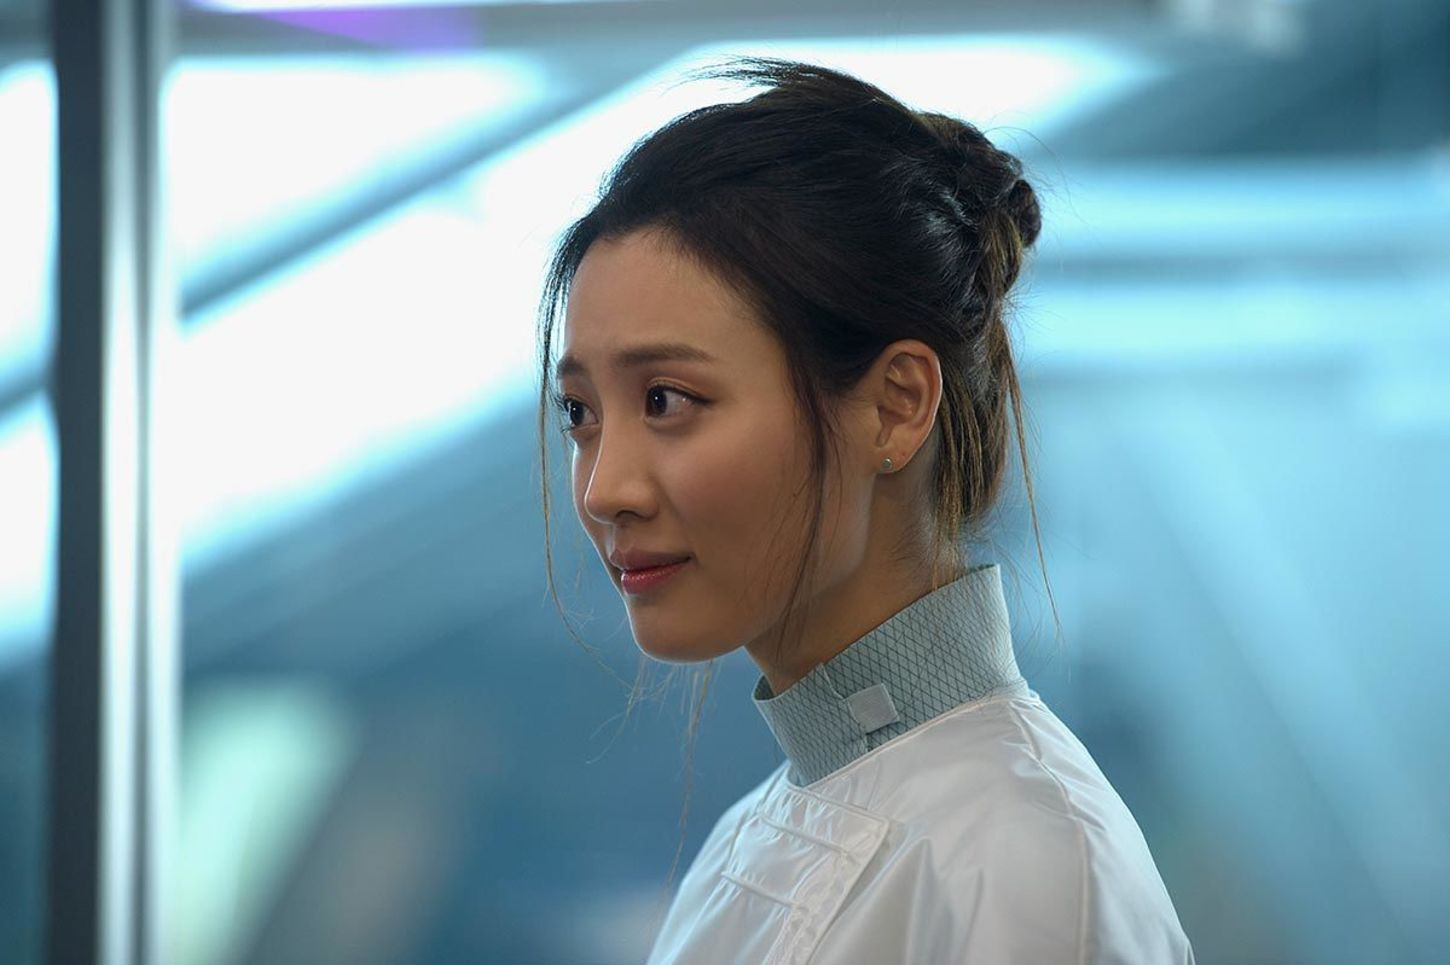 Dr Cho in 'Avengers: Age of Ultron' is a rare instance of a woman playing a geneticist in an action film. Courtesy Marvel Studios.